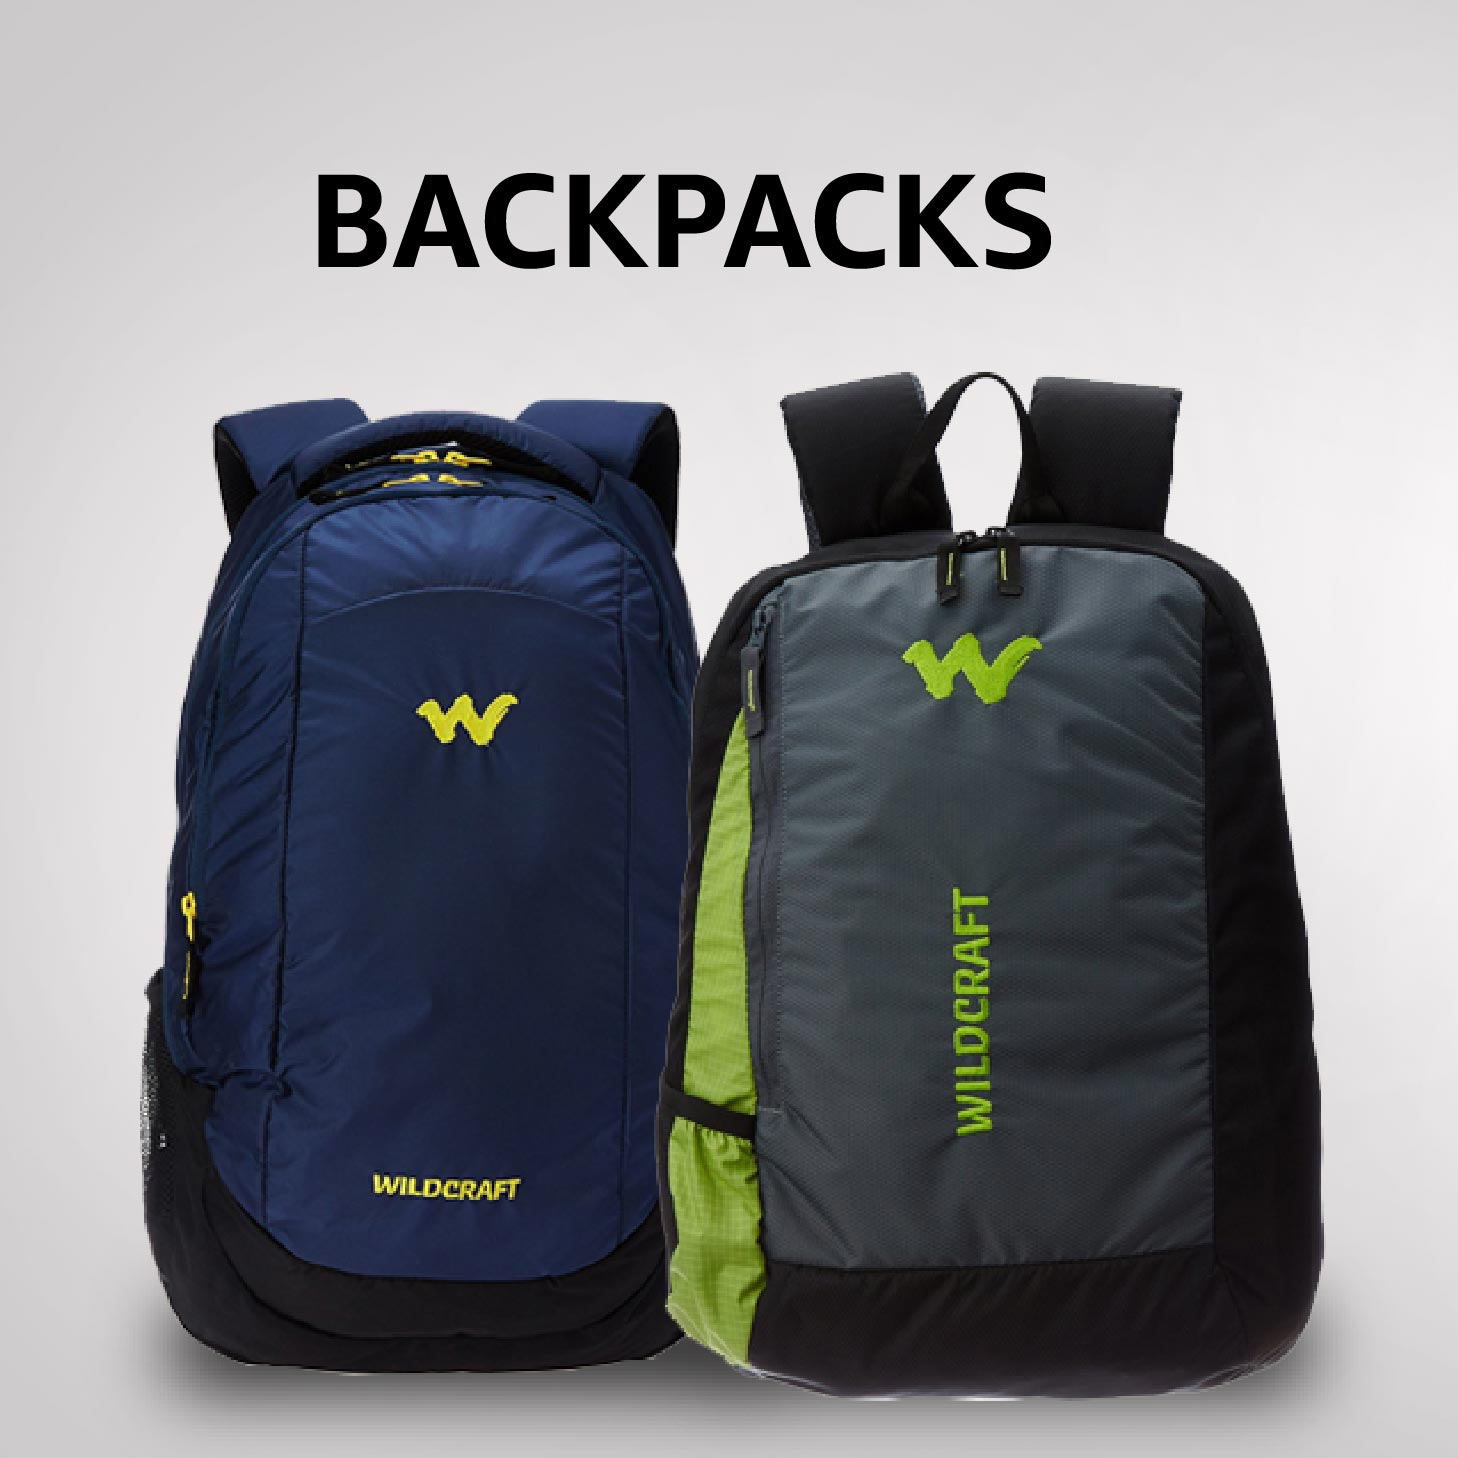 Wildcraft Store  Buy Wildcraft Backpacks online at best prices in ... eafb4ae702738